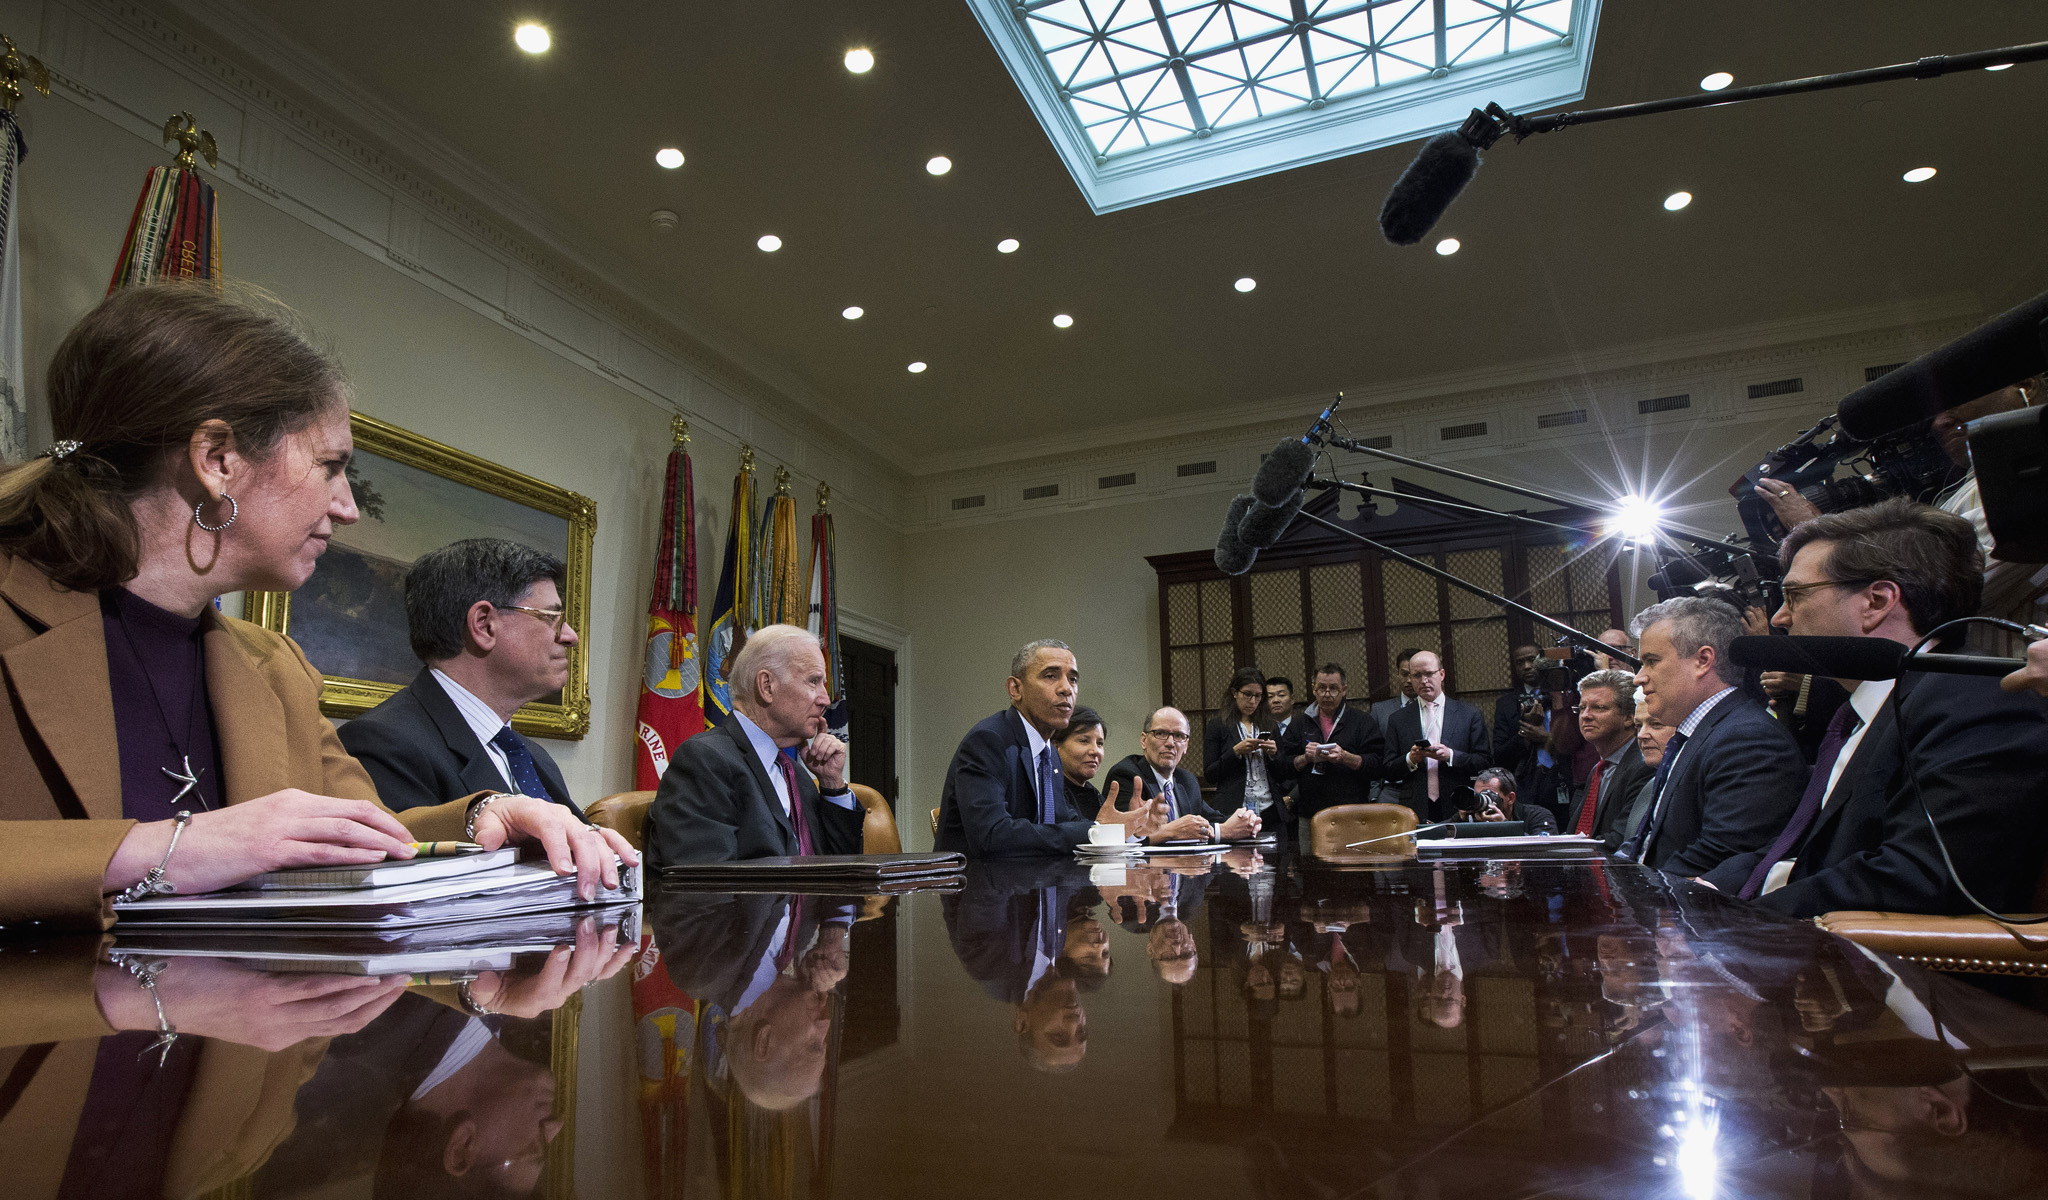 Barack Obama...President Barack Obama meets with members of his economic team in the Roosevelt Room of the White House in Washington, Friday, March 4, 2016. Obama spoke about U.S. employers adding 242,000 workers in February, driving another solid month for the resilient American job market.